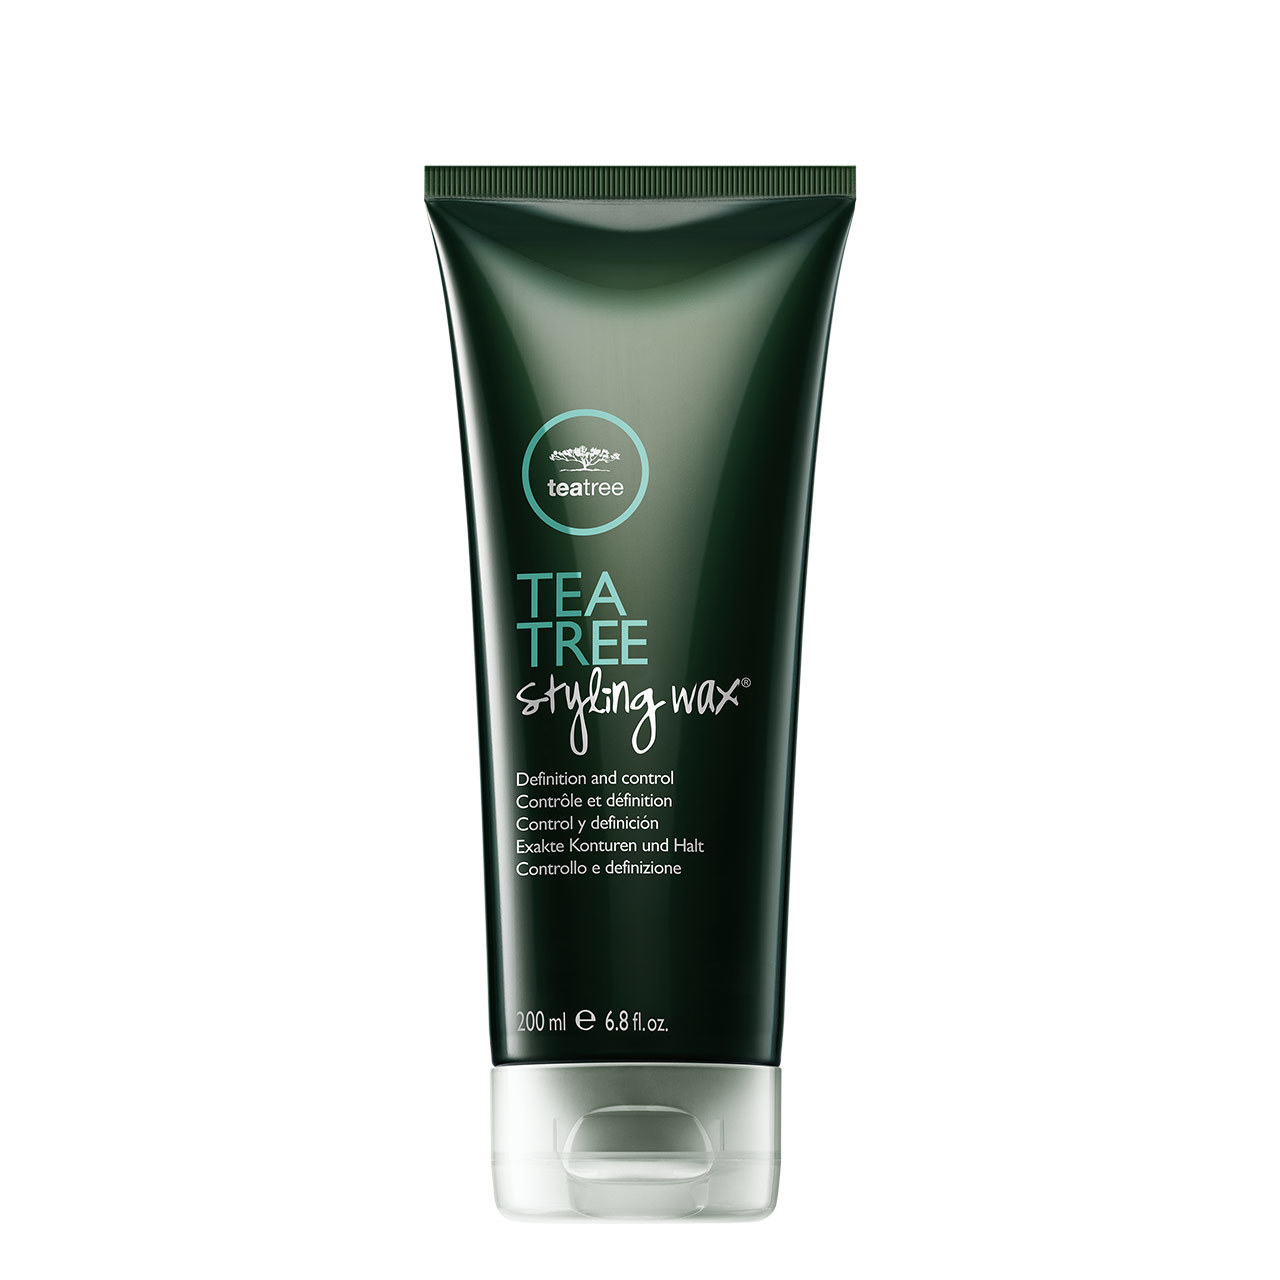 Tea Tree Styling Wax by Paul Mitchell